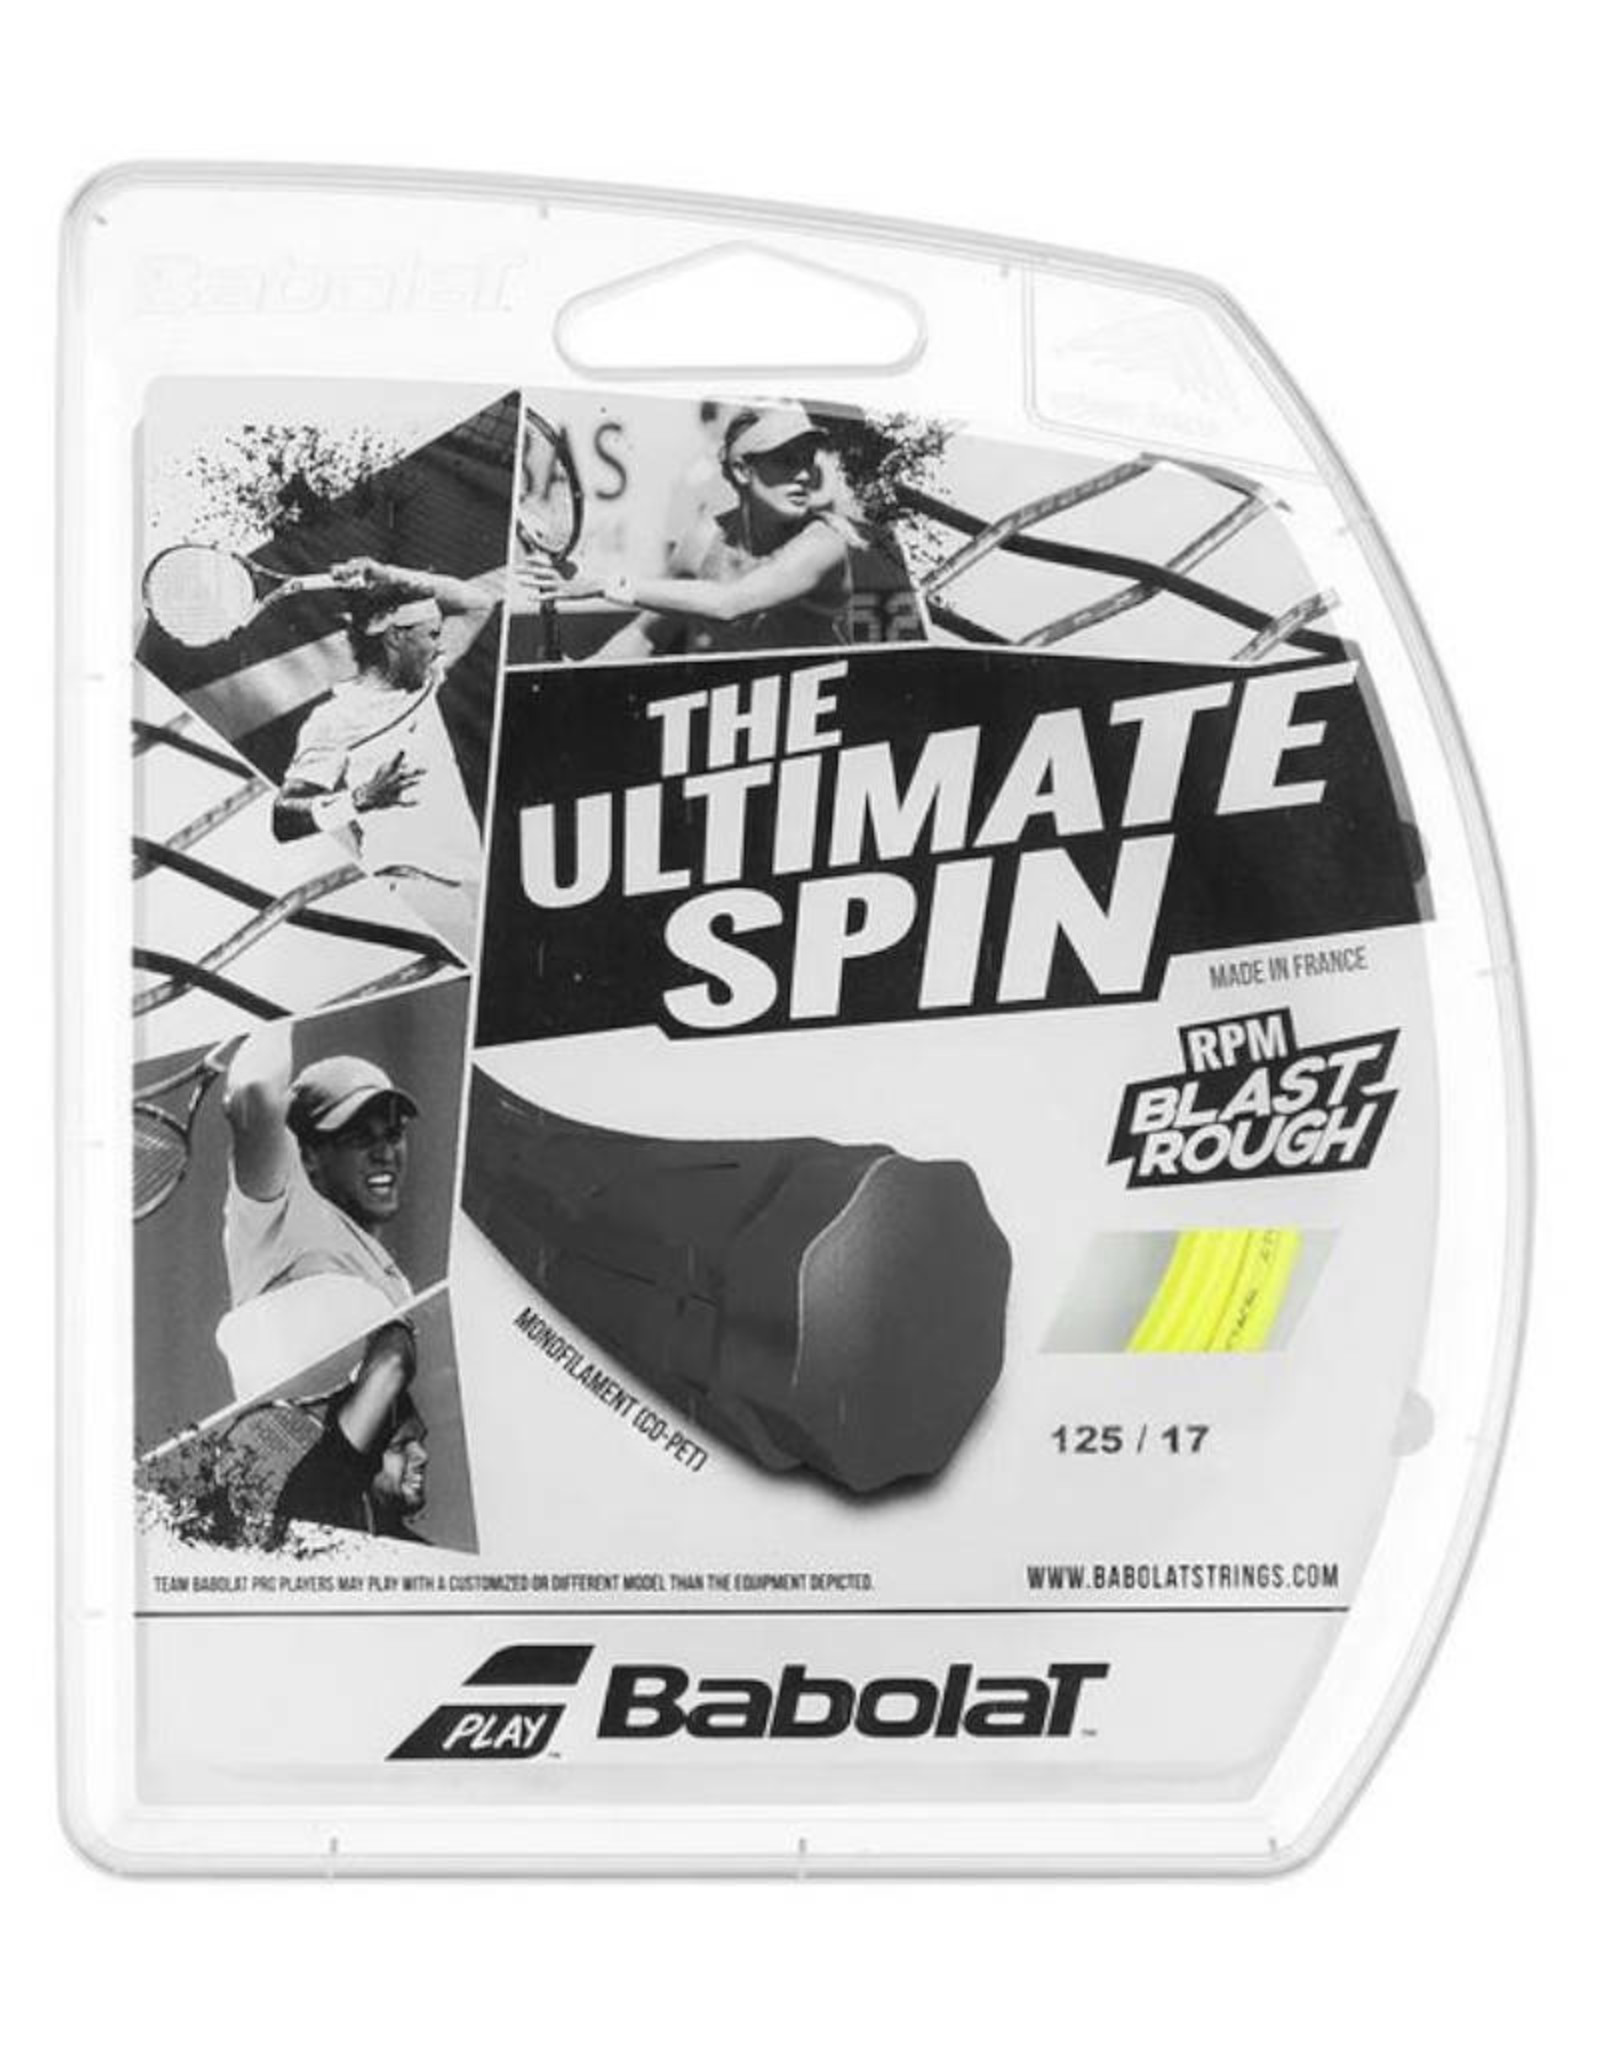 BABOLAT RPM BLAST ROUGH 17 FULL SET (YELLOW)